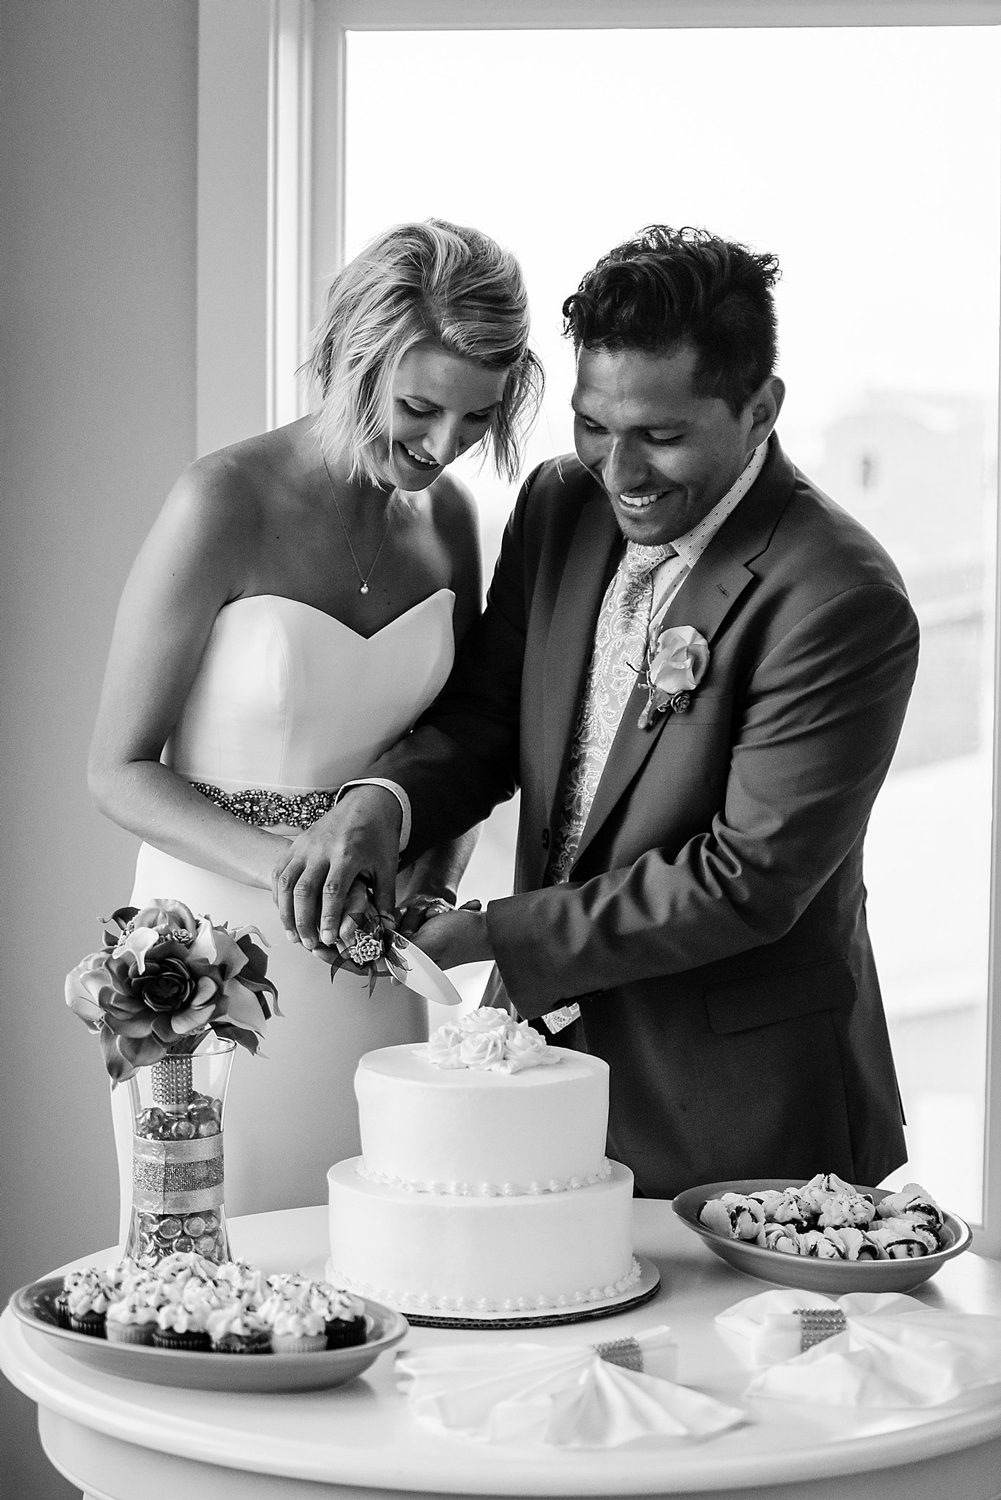 bride-groom-cut-cake-blue-horizon-wedding-virginia-beach-photographer-melissa-bliss-photography.jpg